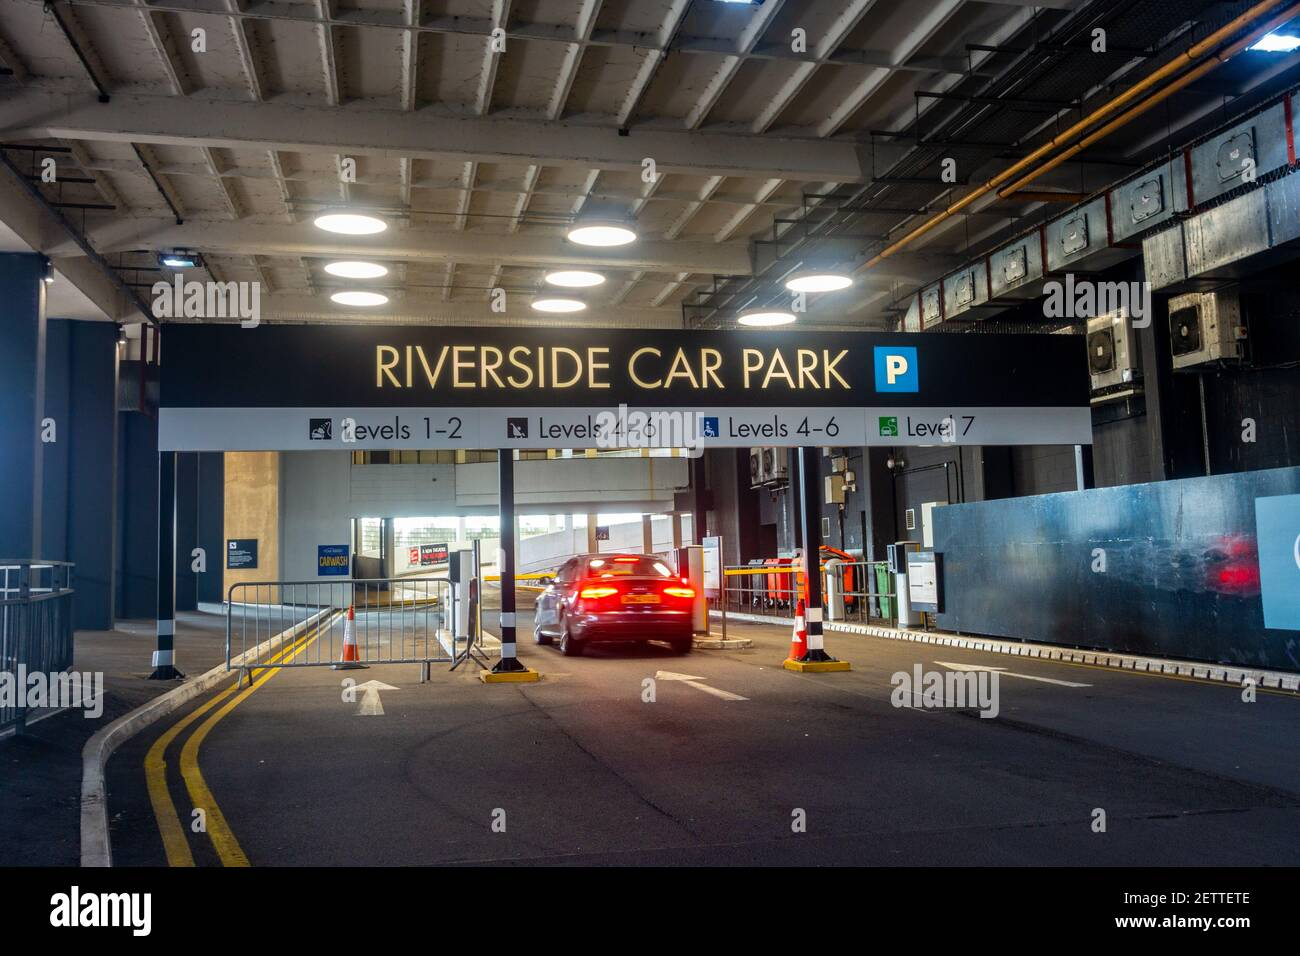 a-car-enters-the-riverside-multi-storey-car-park-part-of-the-oracle-shopping-centre-in-reading-uk-2ETTETE.jpg